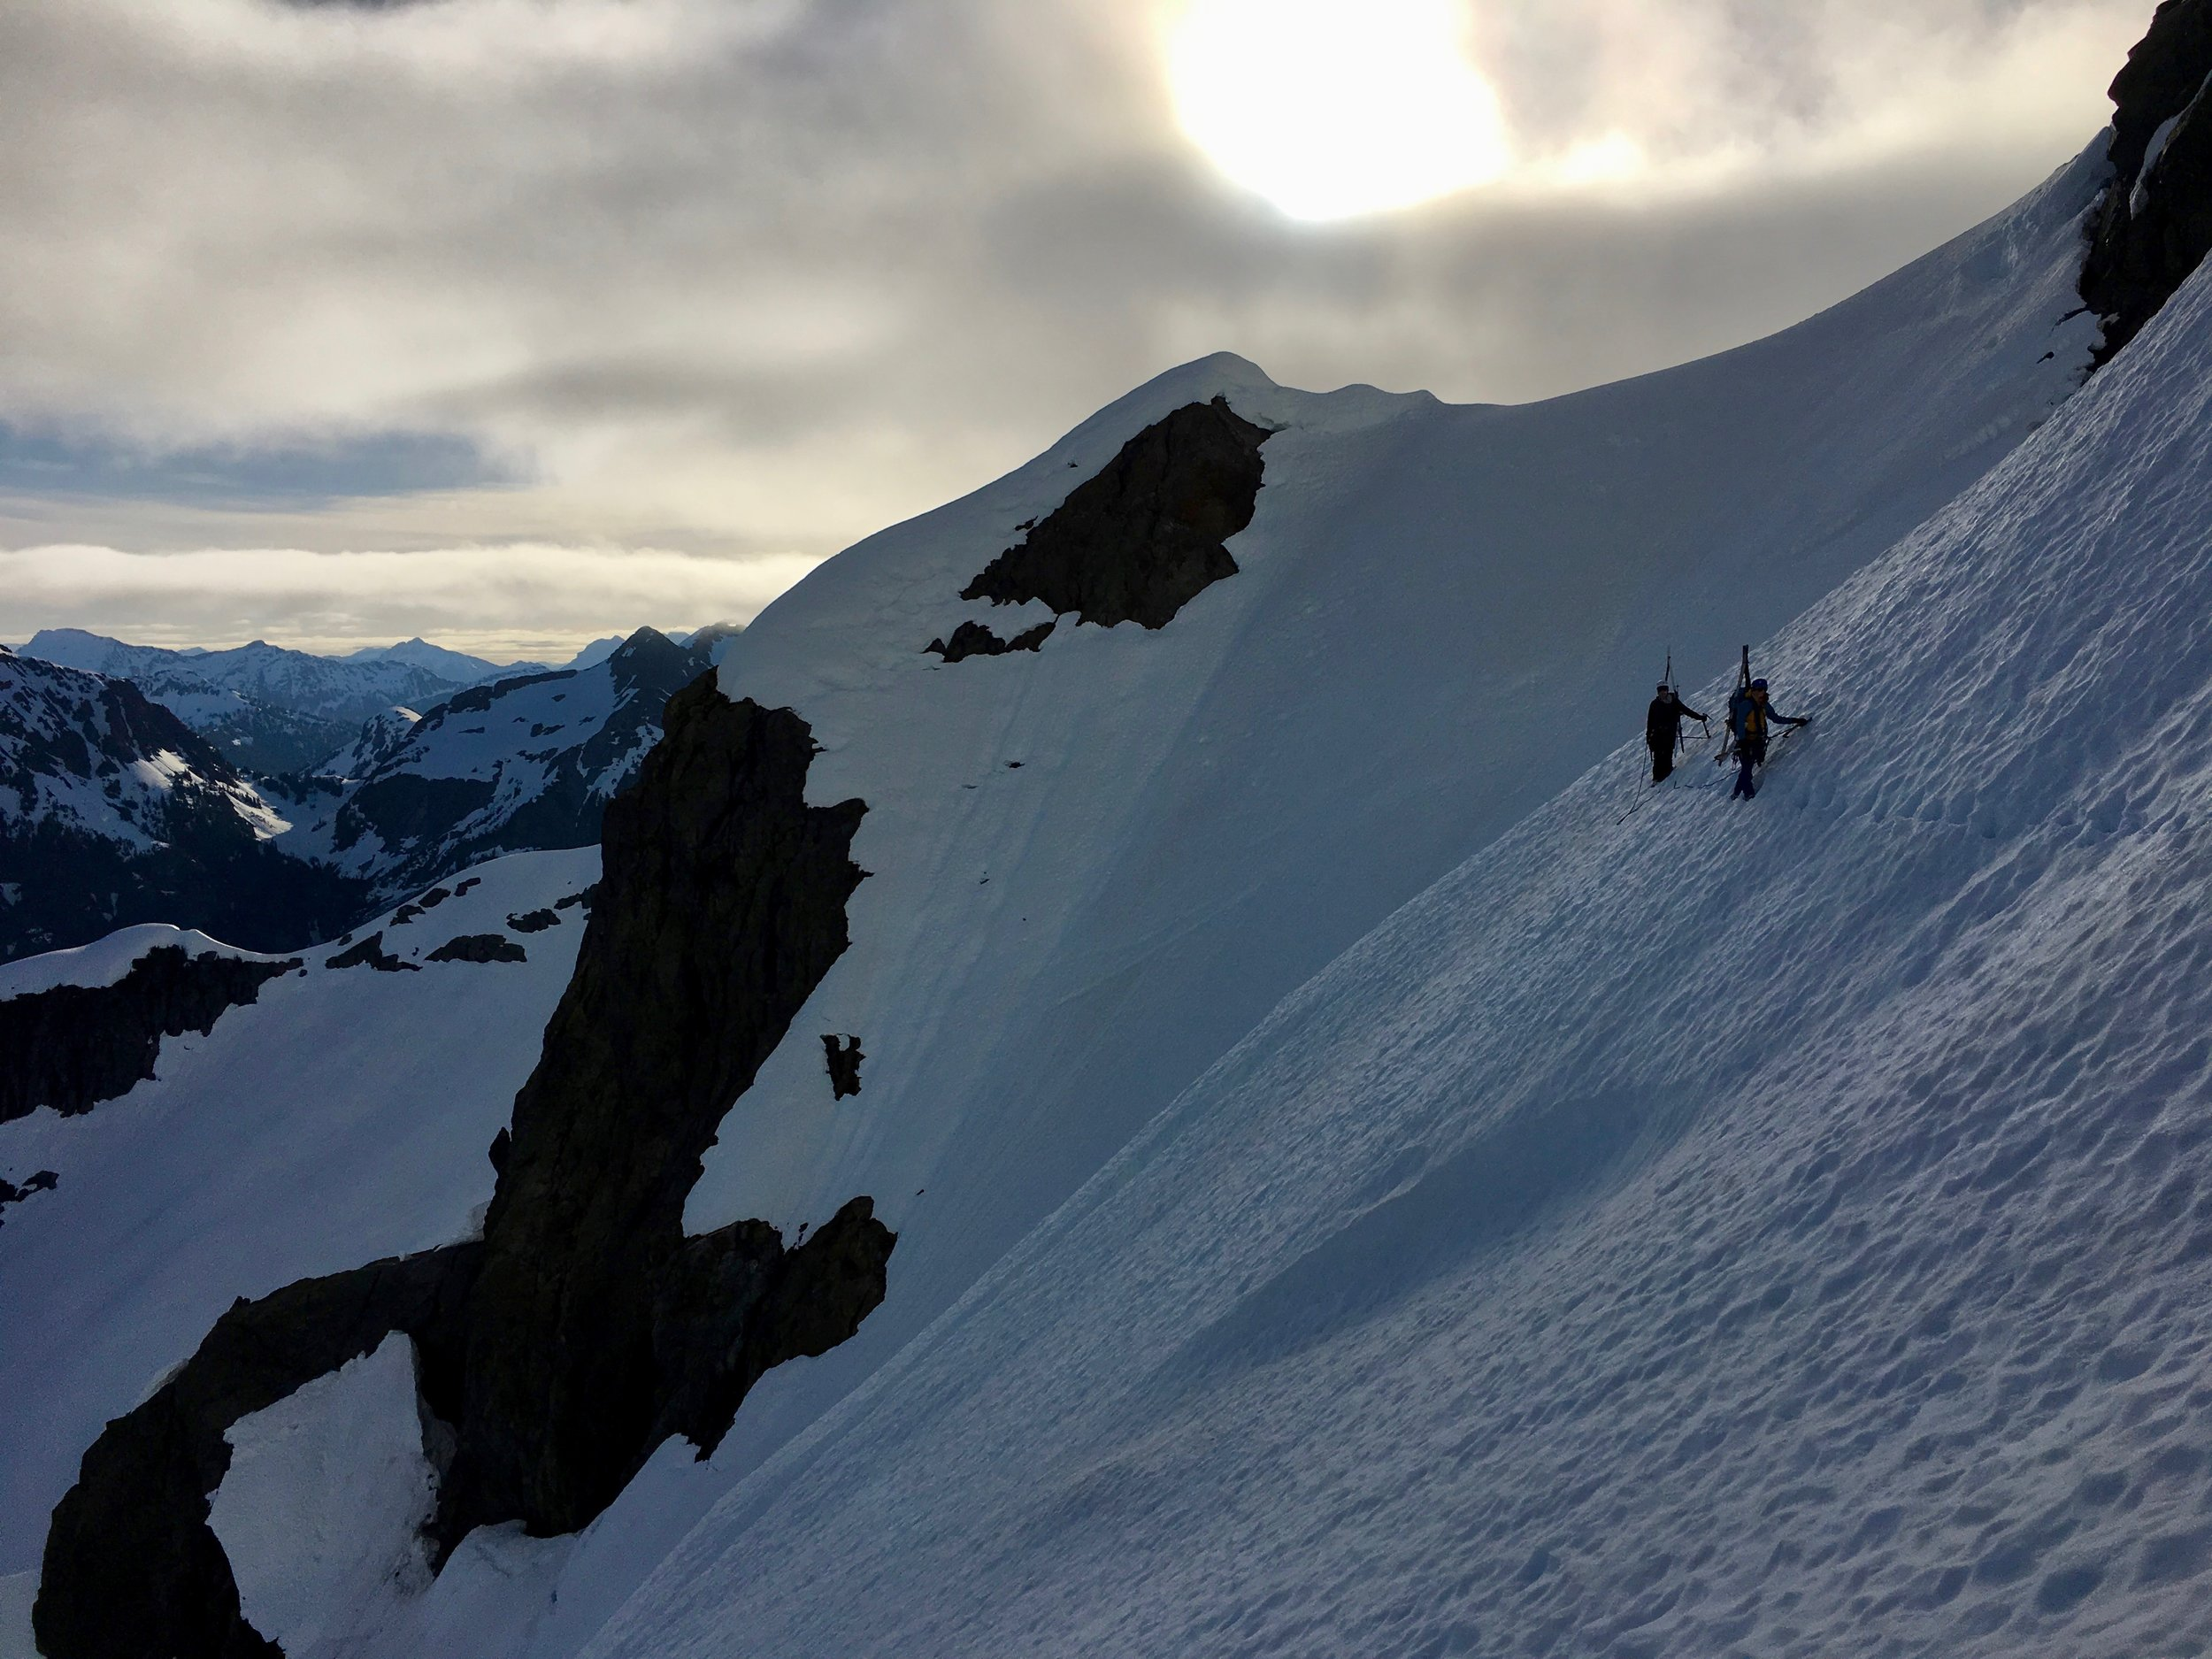 Traversing from the saddle to the ice step